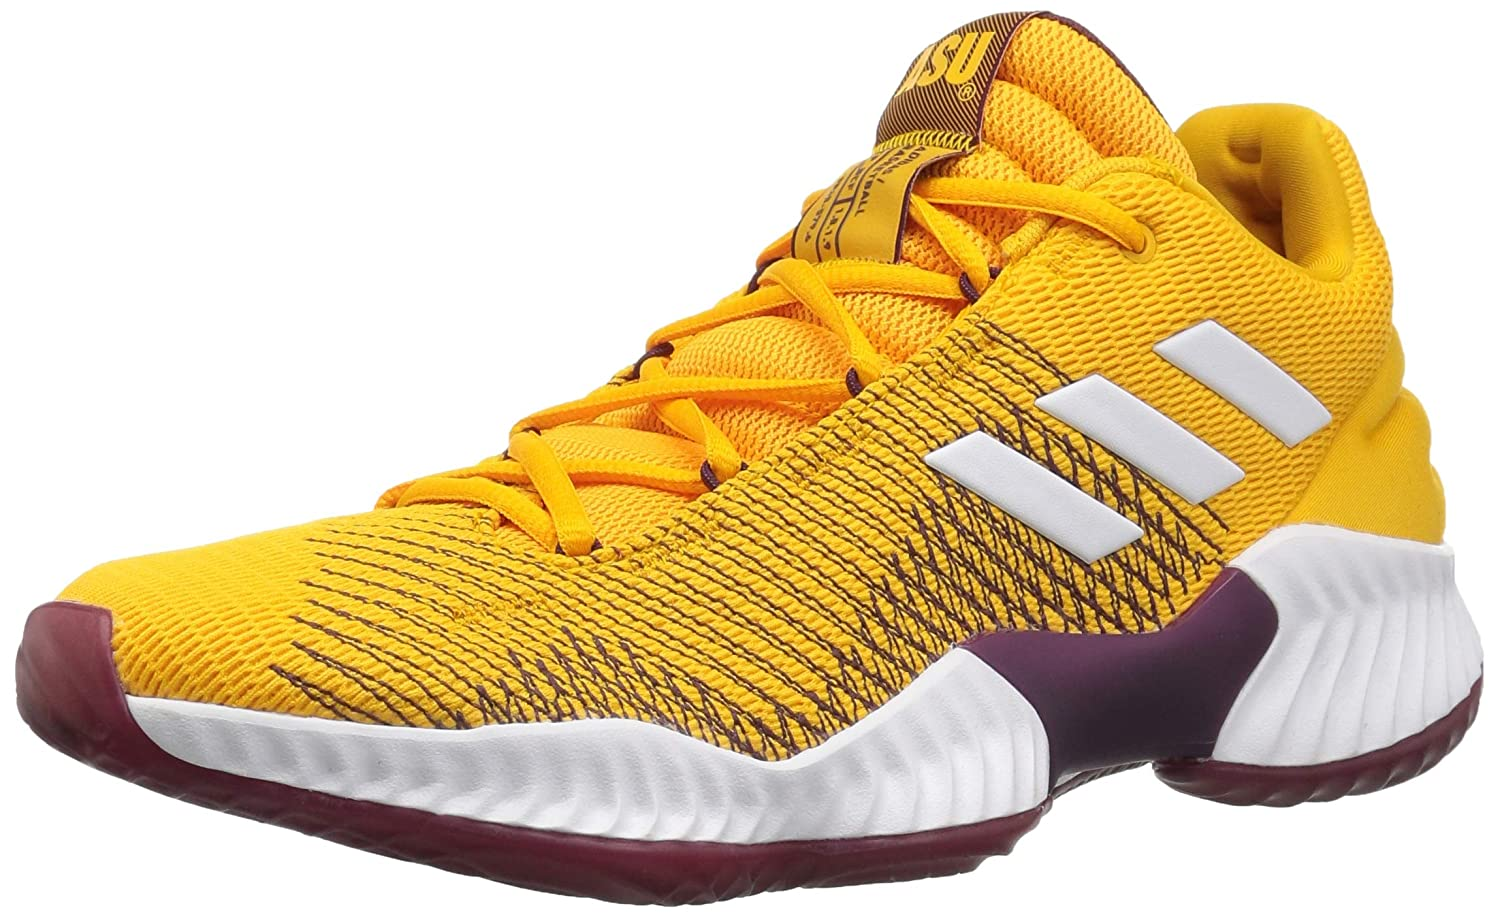 Collegiate gold White Maroon Adidas Mens Pro Bounce 2018 Low Basketball shoes